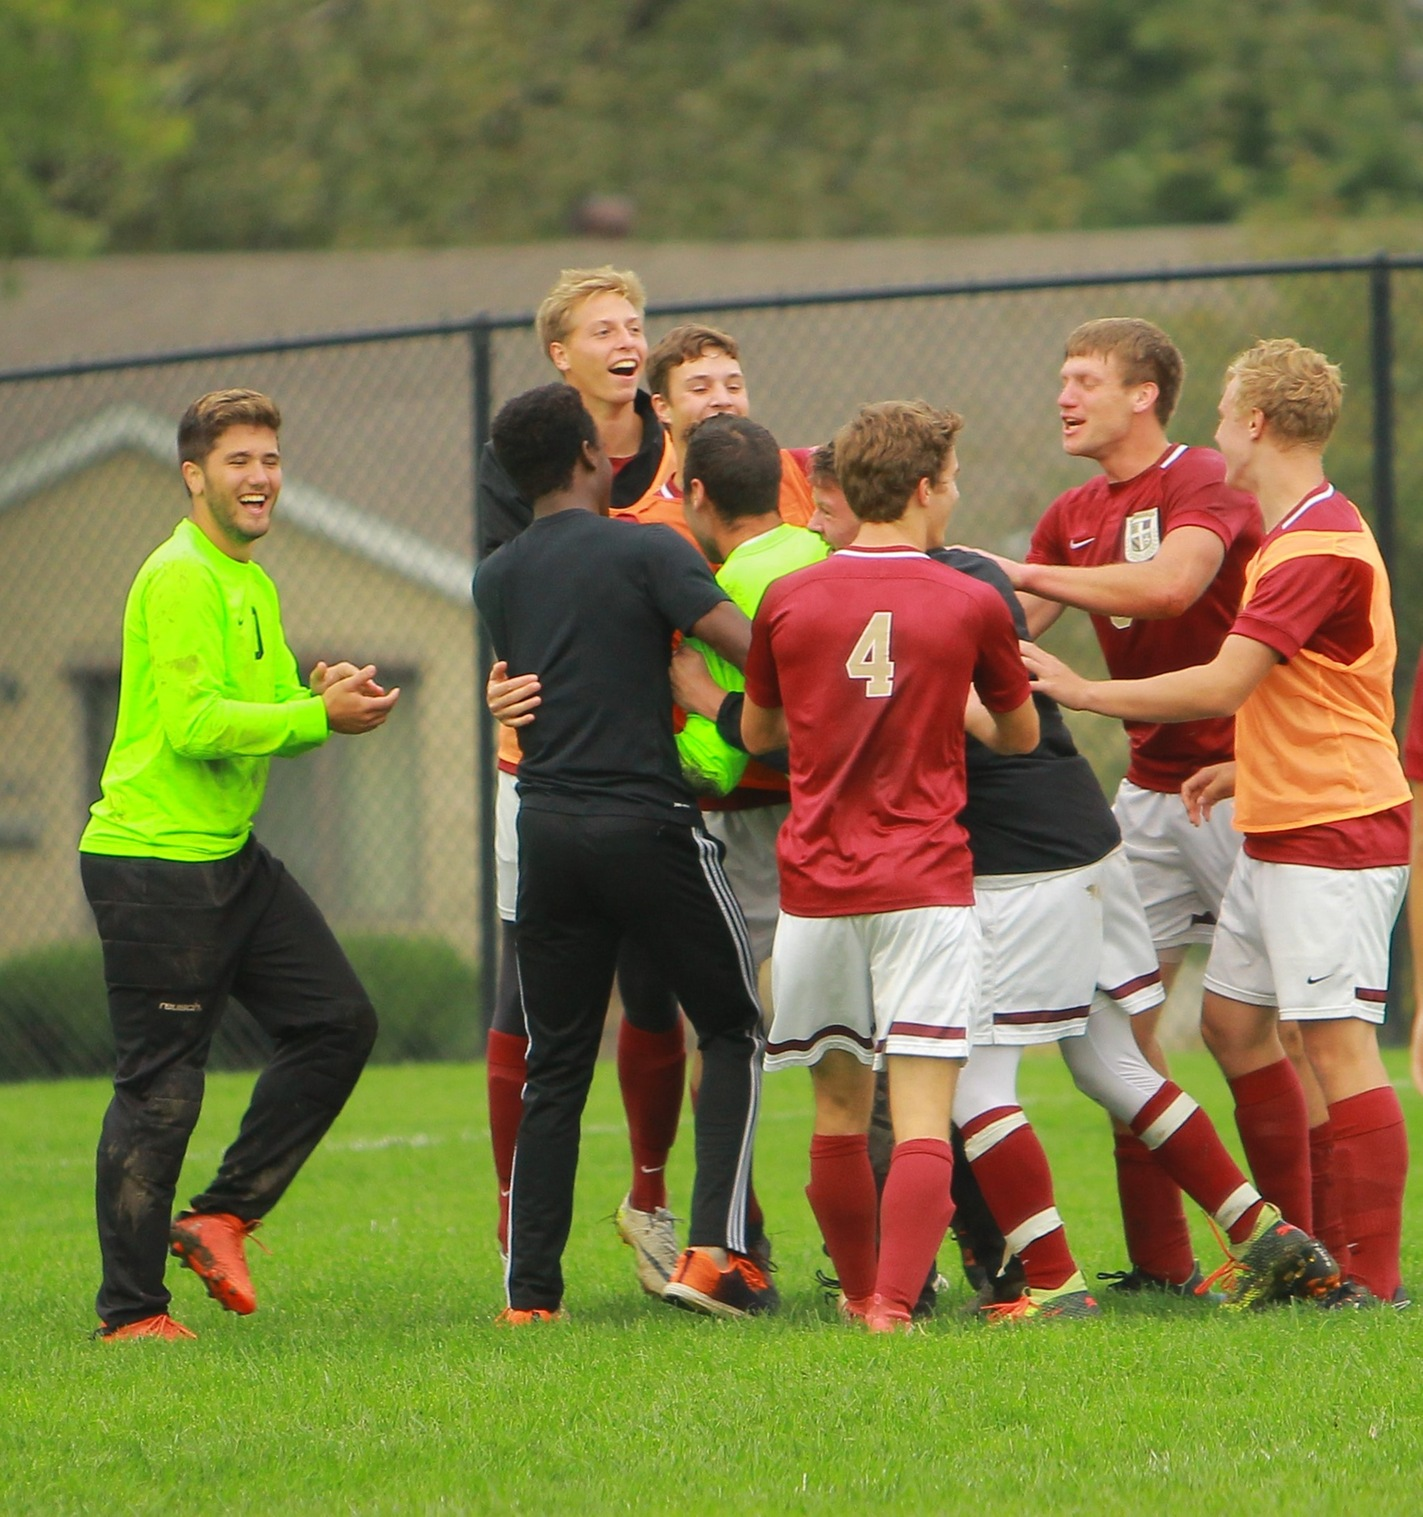 Eagles players mob goalkeeper Daniel Moore following an incredible penalty kick save, ending the game in a 0-0 tie against #10 Emmaus.